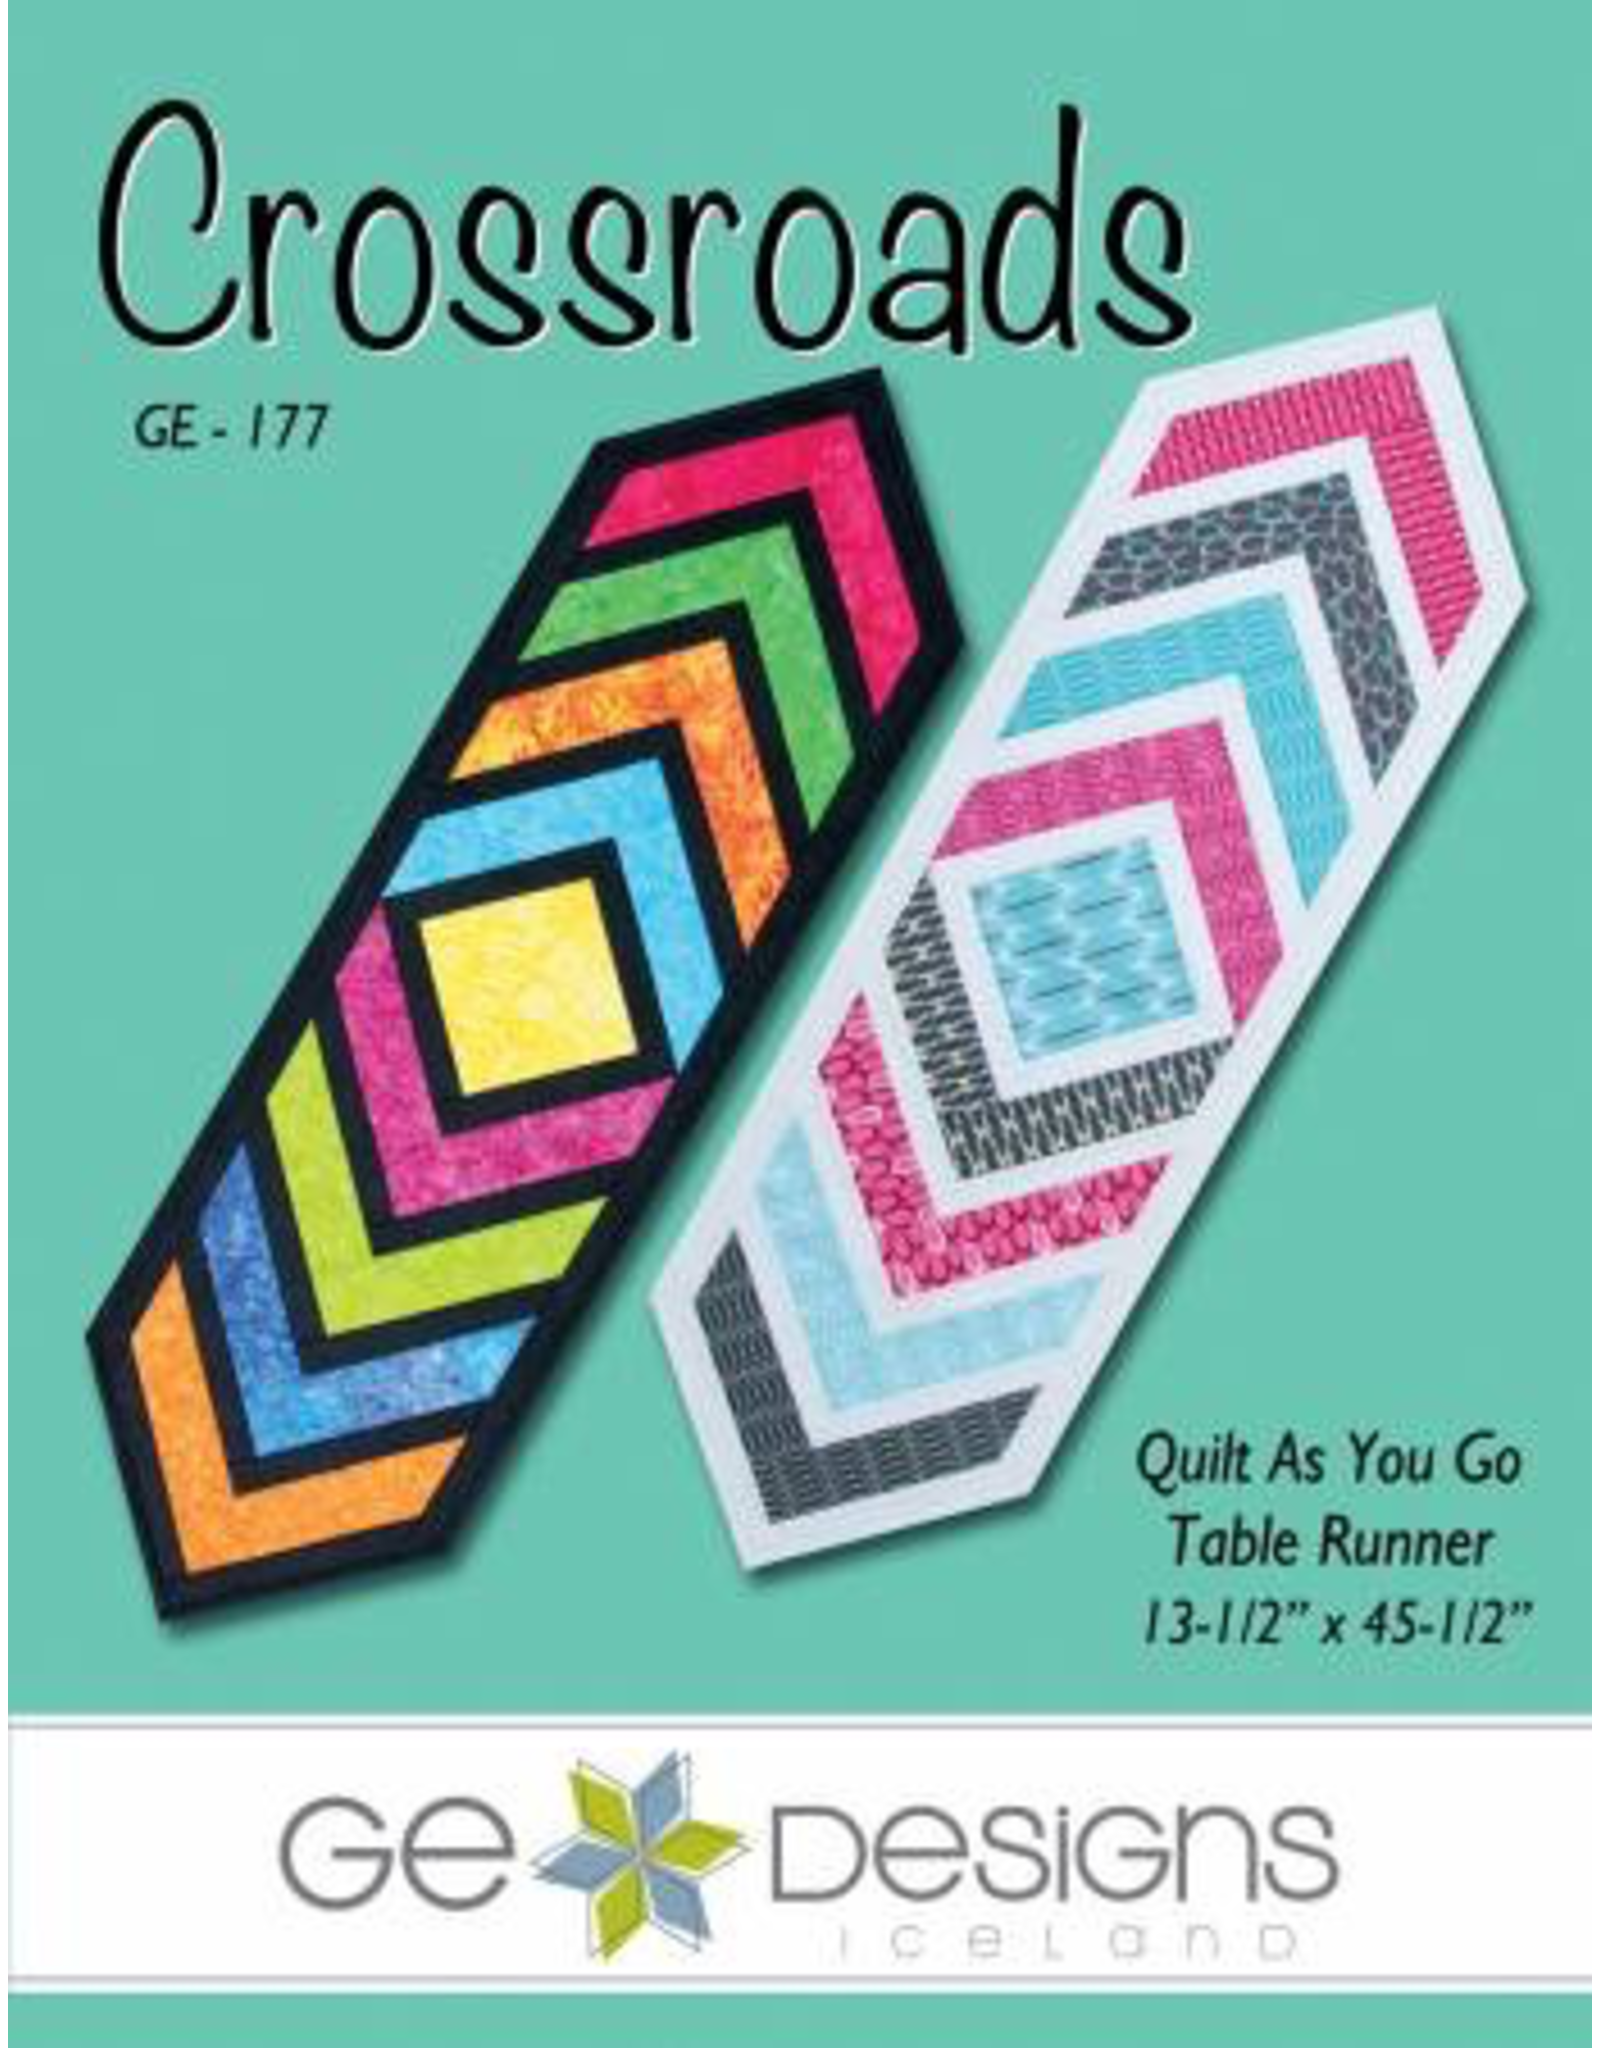 Crossroads (Quilt As You Go)